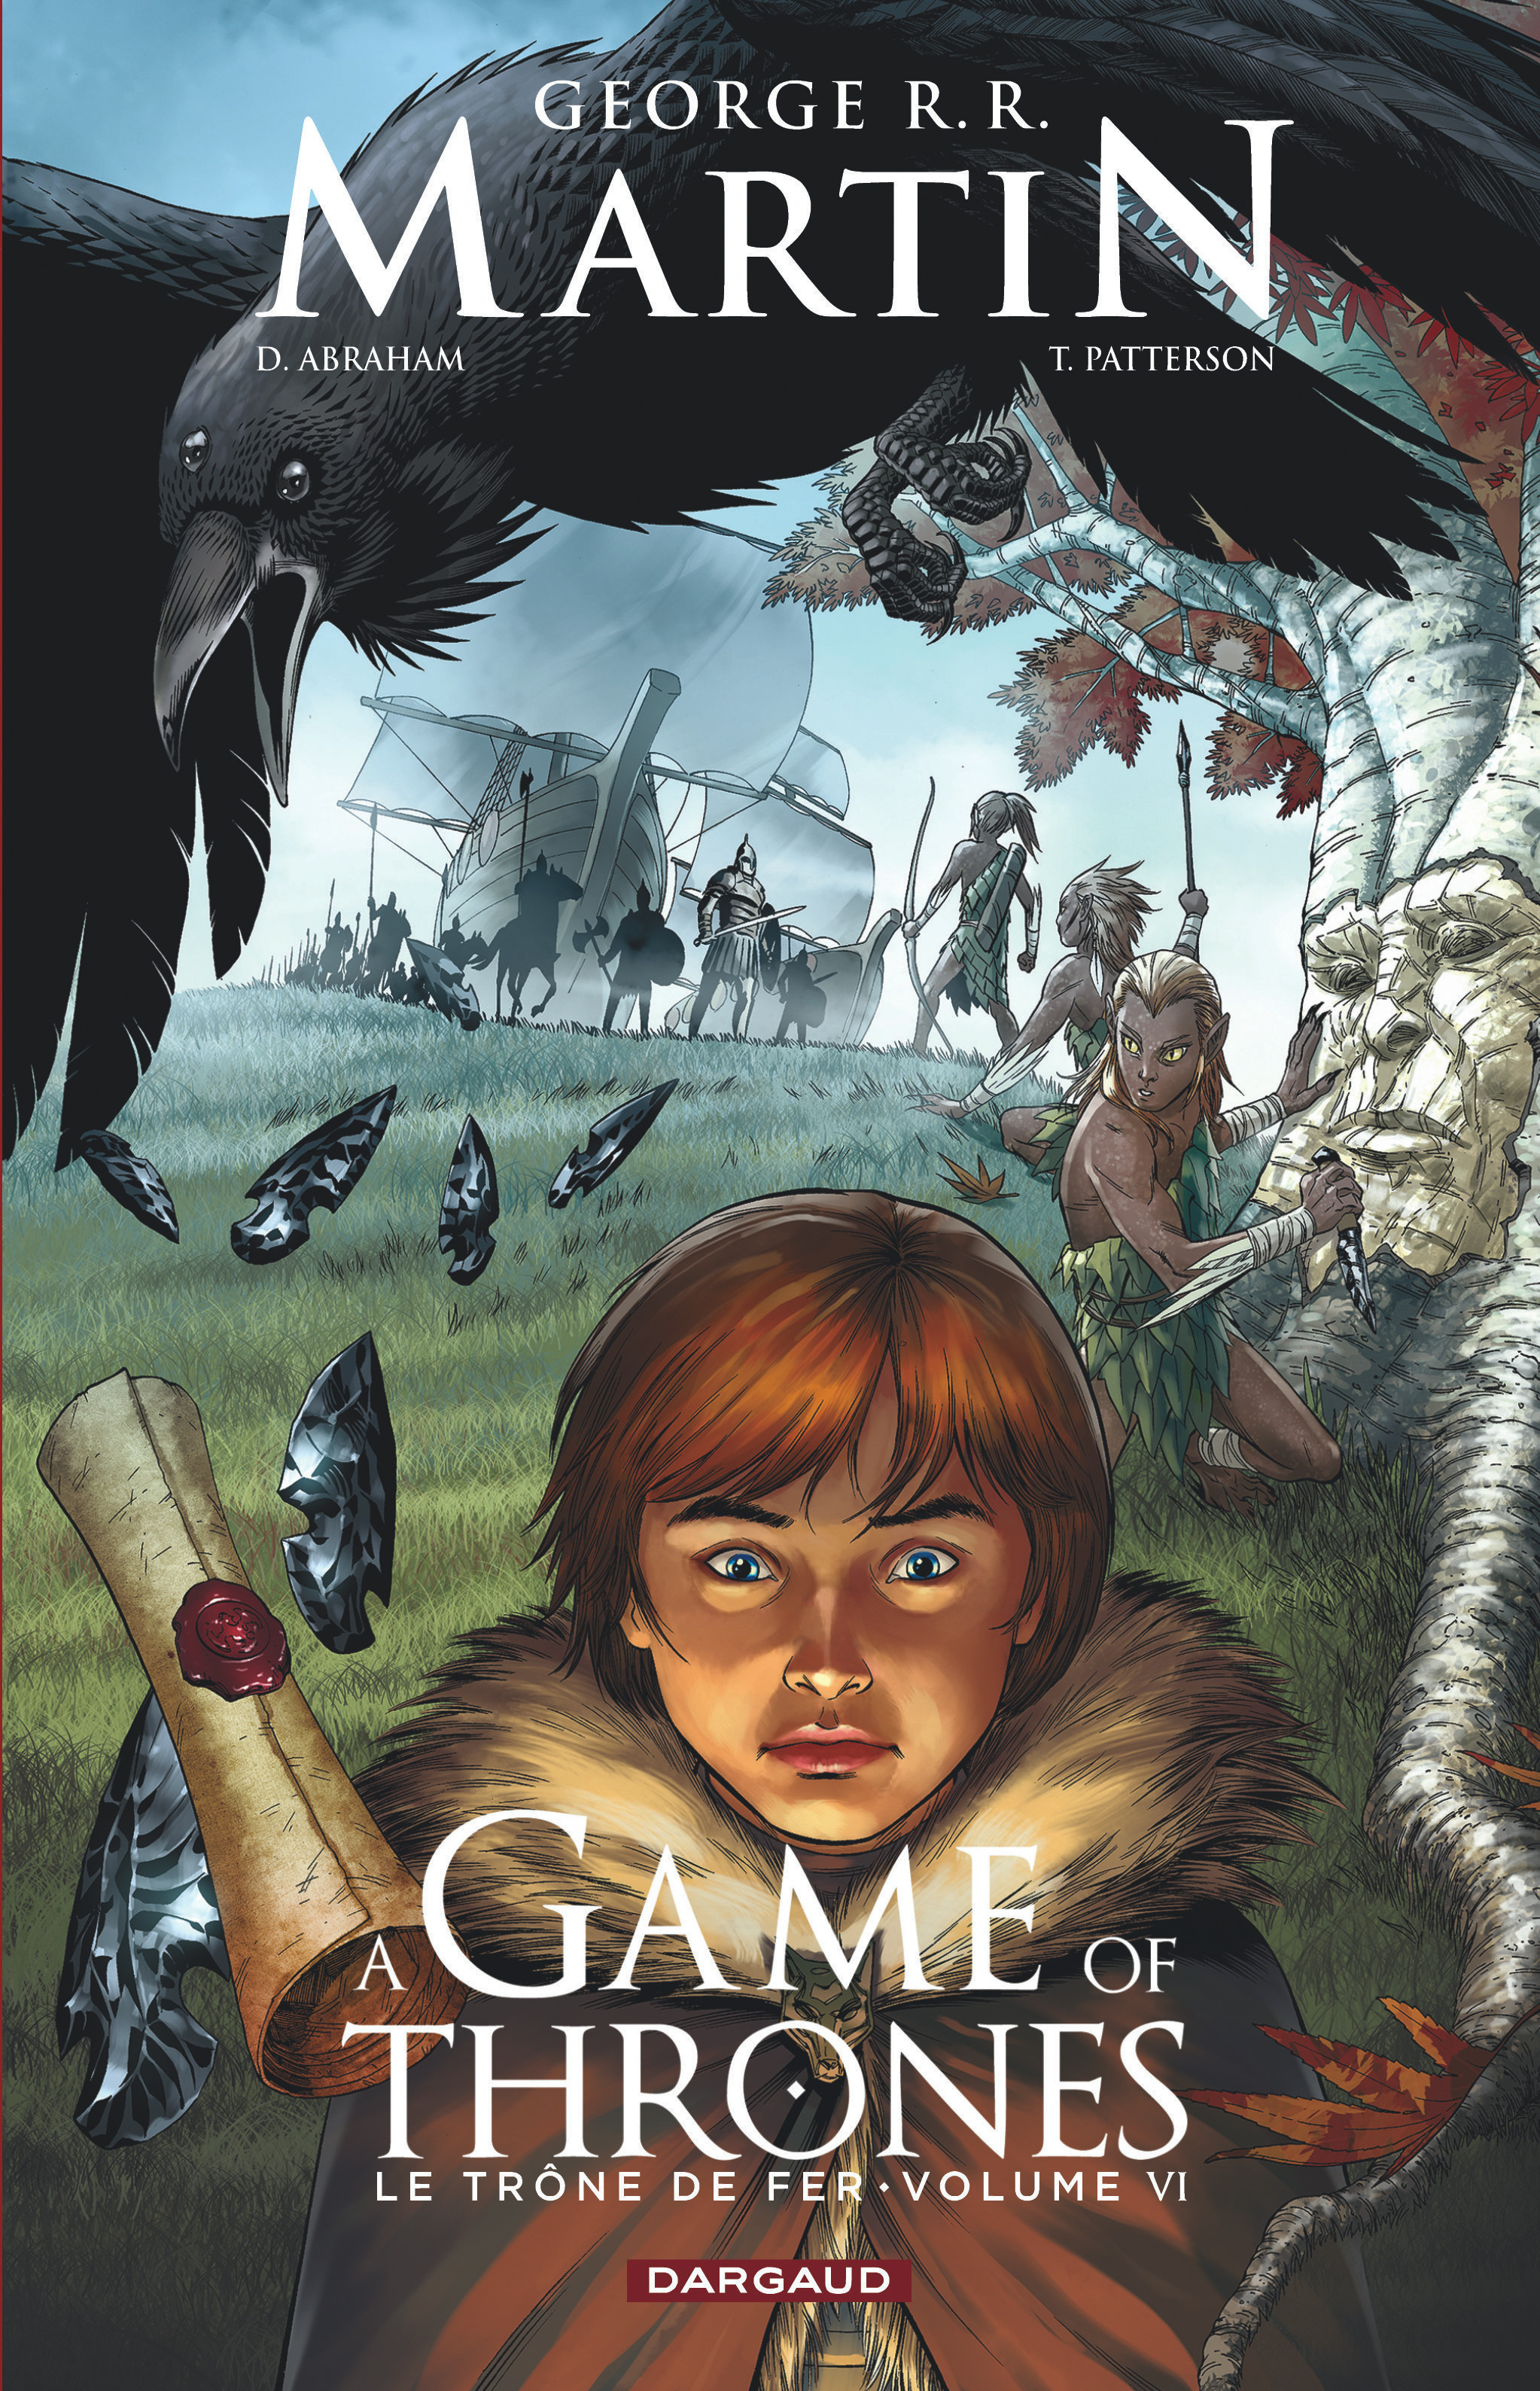 A GAME OF THRONES-LE TRONE FER T6 A GAME OF THRONES - LE TRONE DE FER